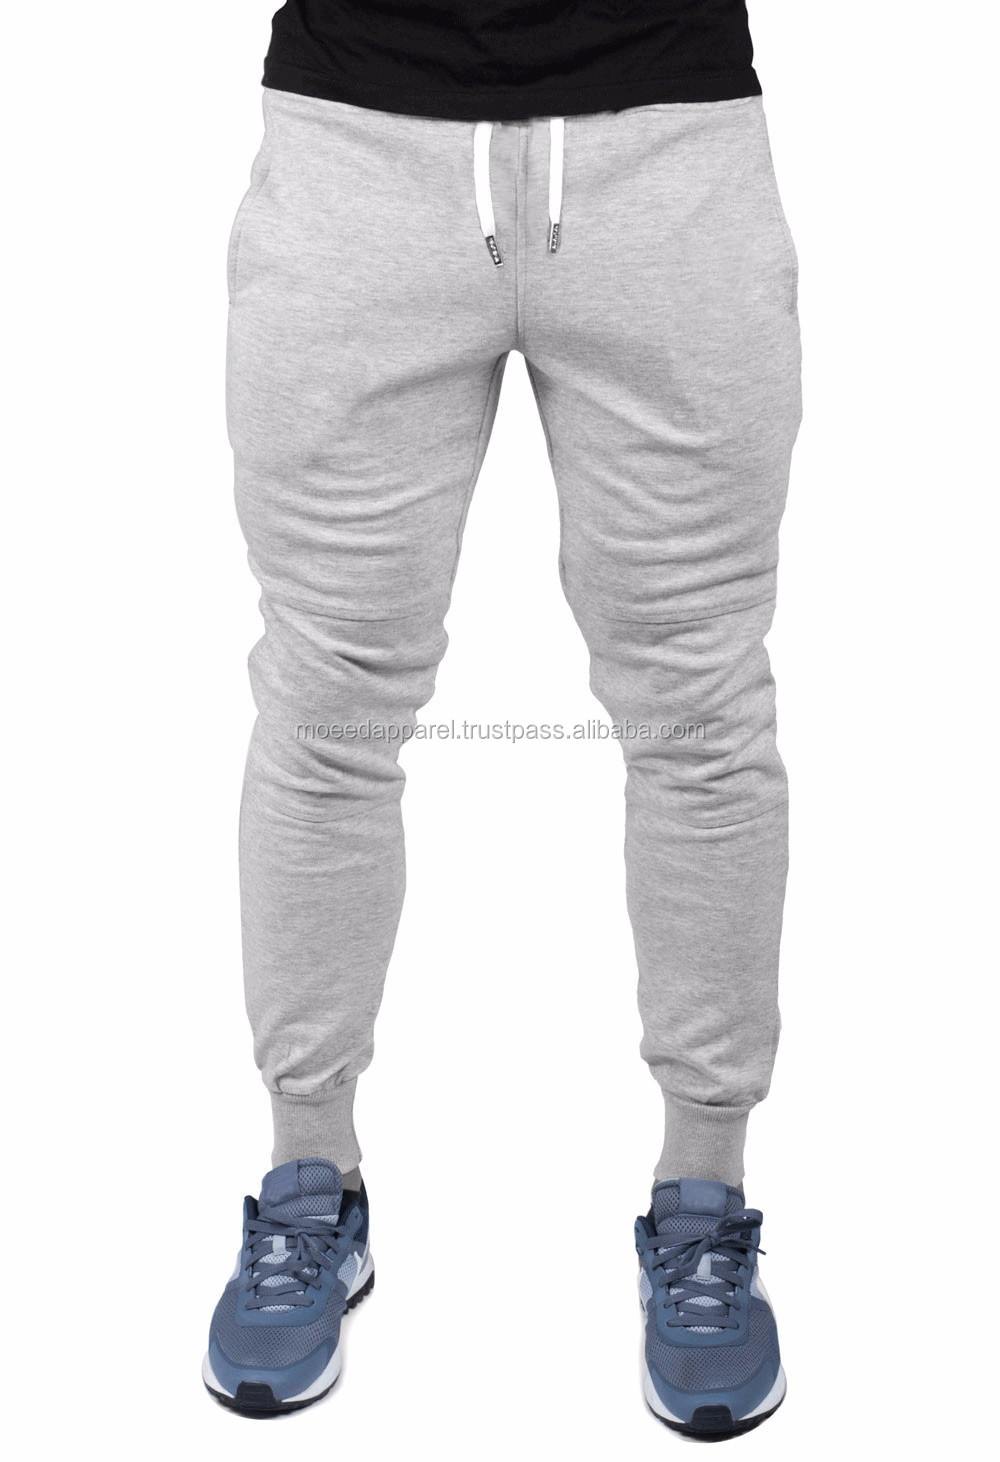 100% cotton Casual Long Trousers Wholesale Men Jogger Sweatpants Blank